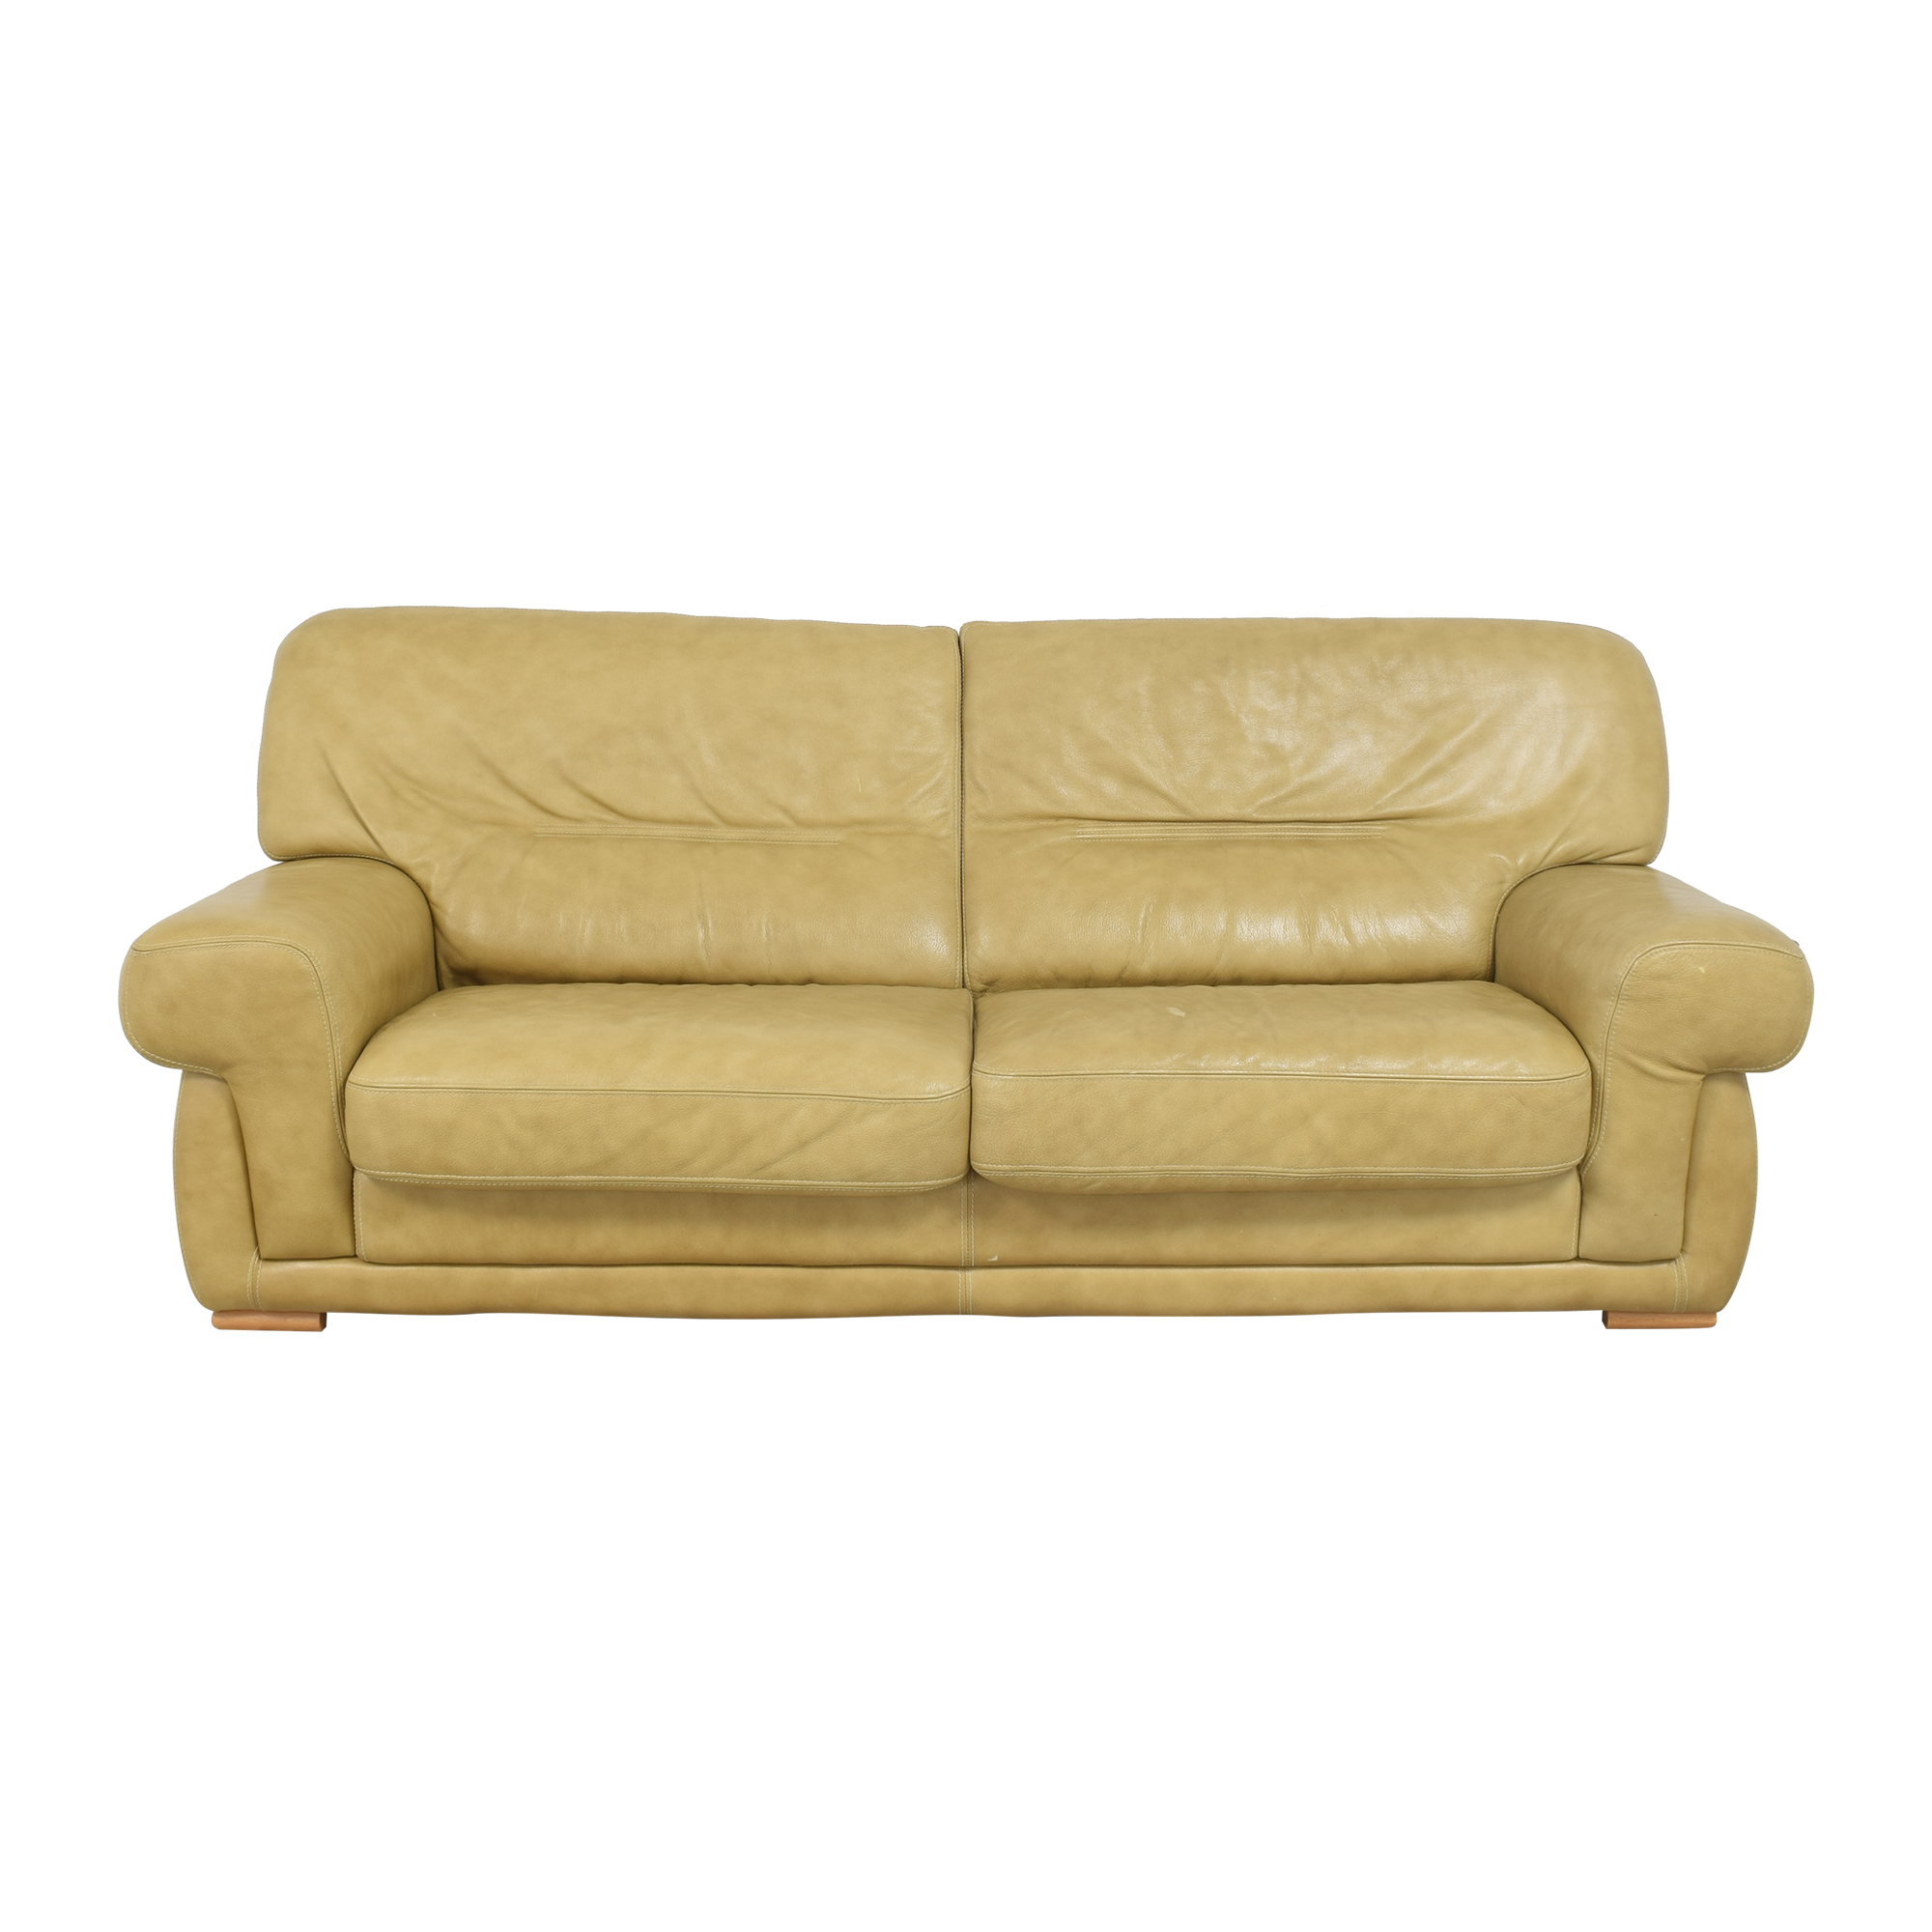 Formitalia Formitalia Two Cushion Sofa used